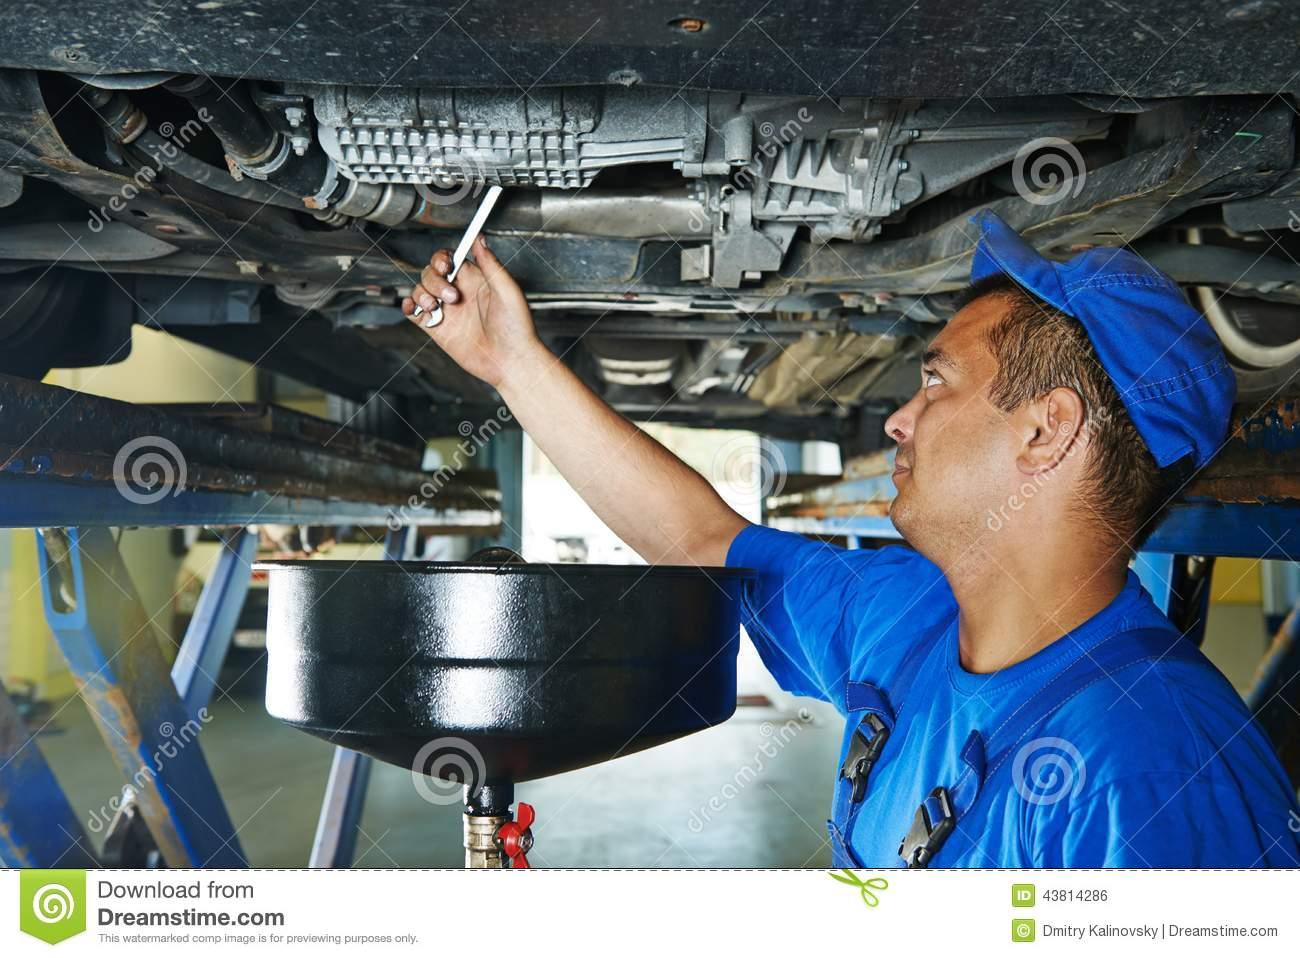 Car Mechanic Replacing Oil From Motor Engine Stock Photo